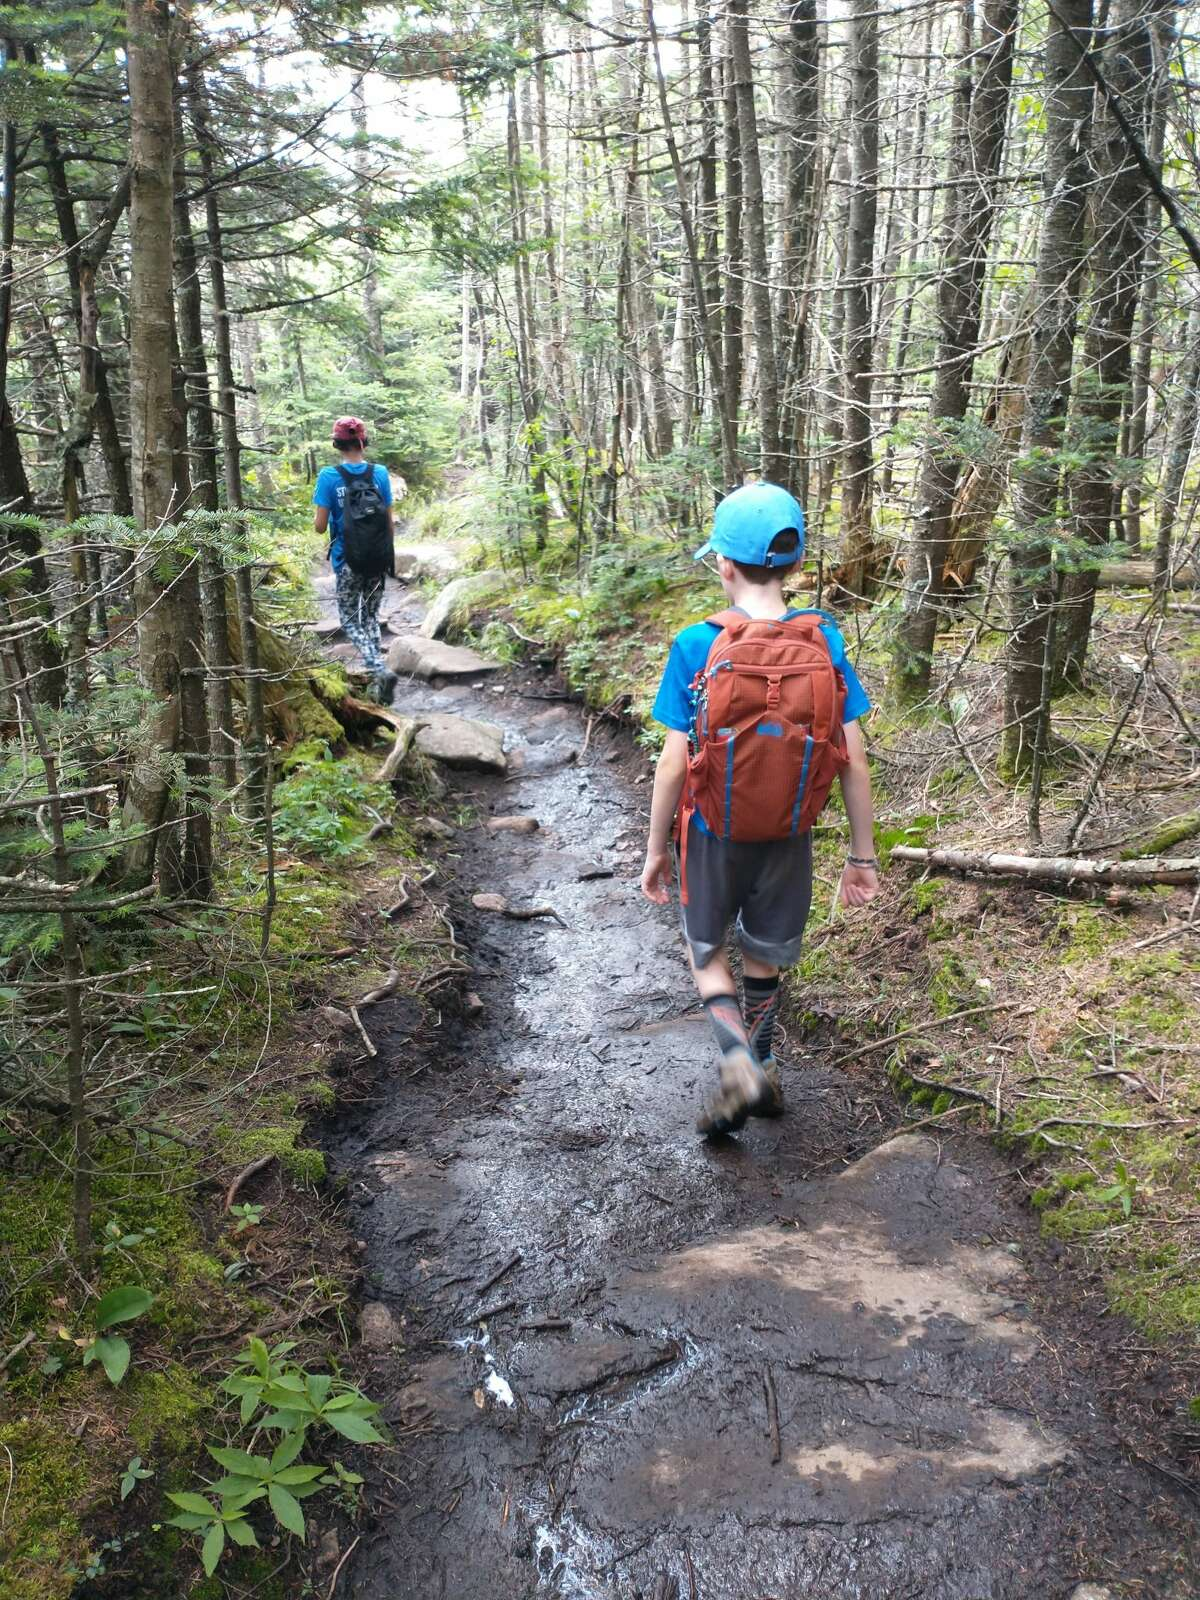 Mud was in ample supply on a recent hike up Esther Mountain in the Adirondack High Peaks.